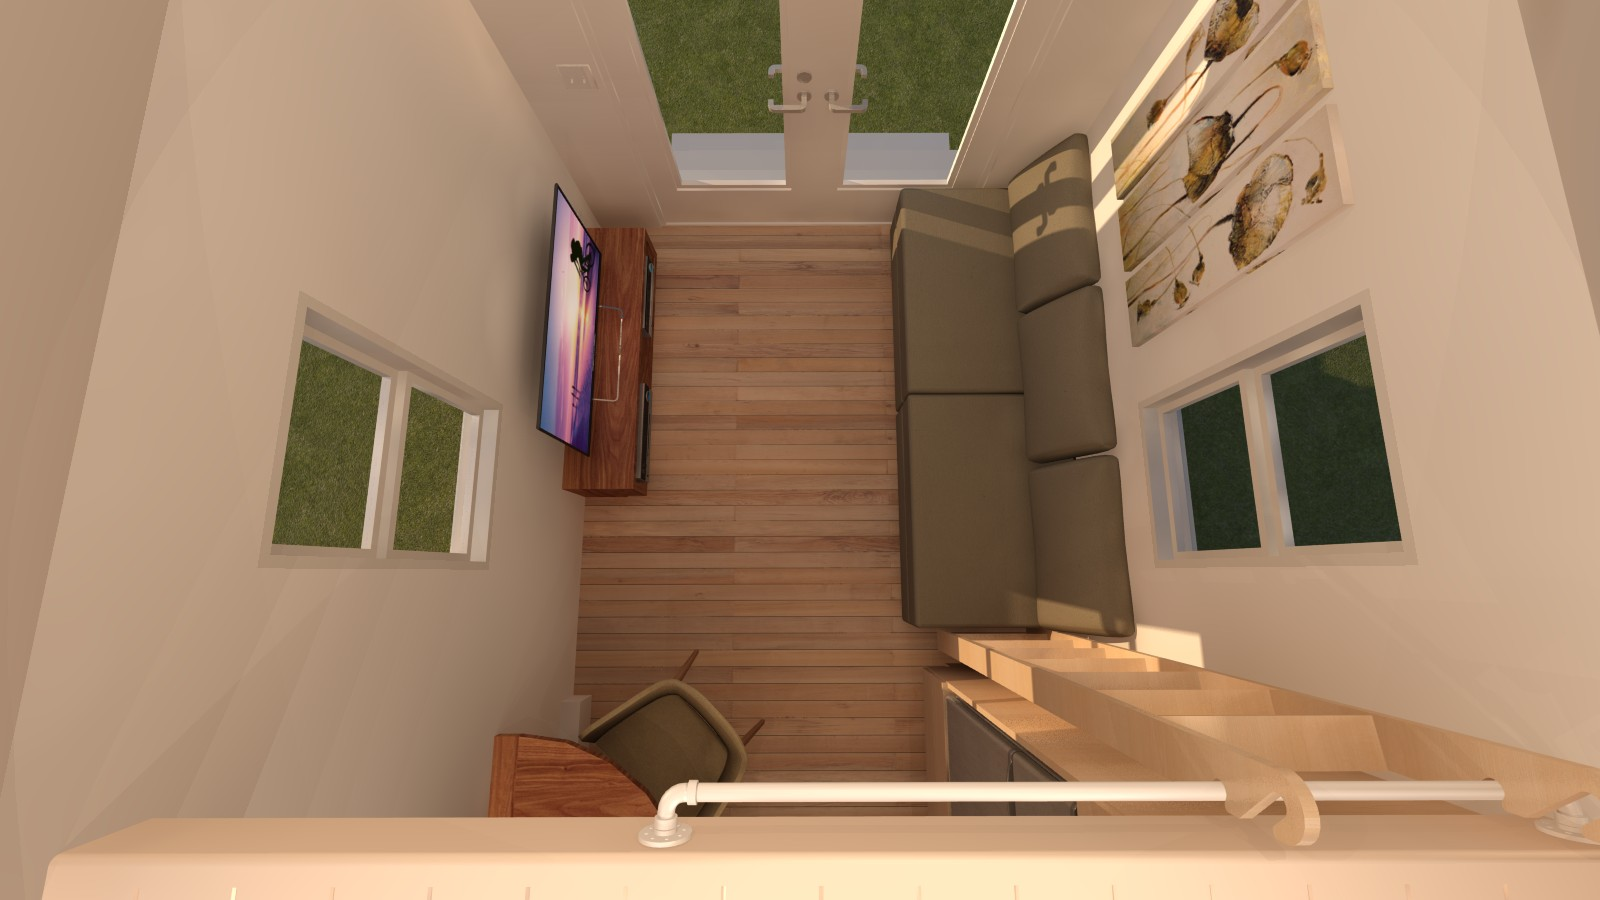 Redwood Valley Tiny House Interior View from Main Loft